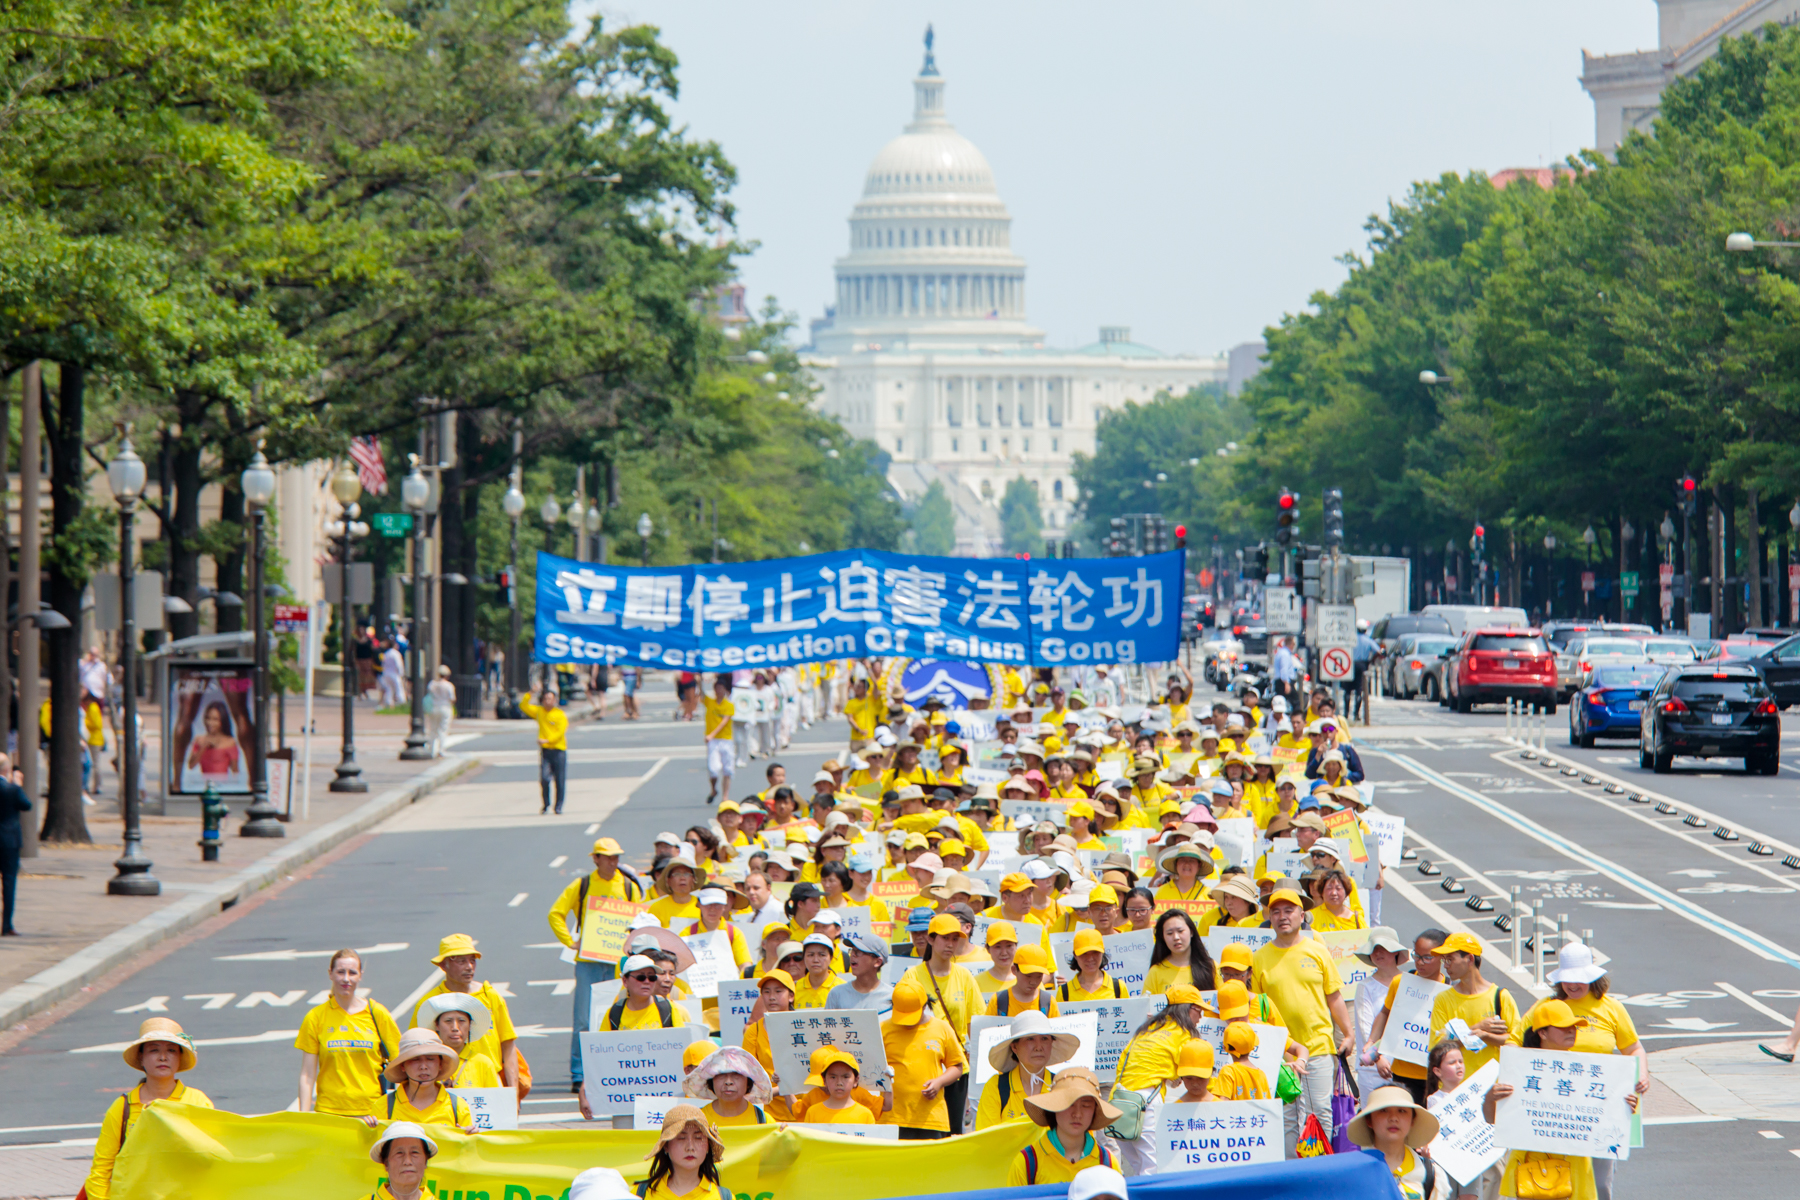 Secretary of State Addresses 21st Anniversary of the PRC Government's Persecution of Falun Gong